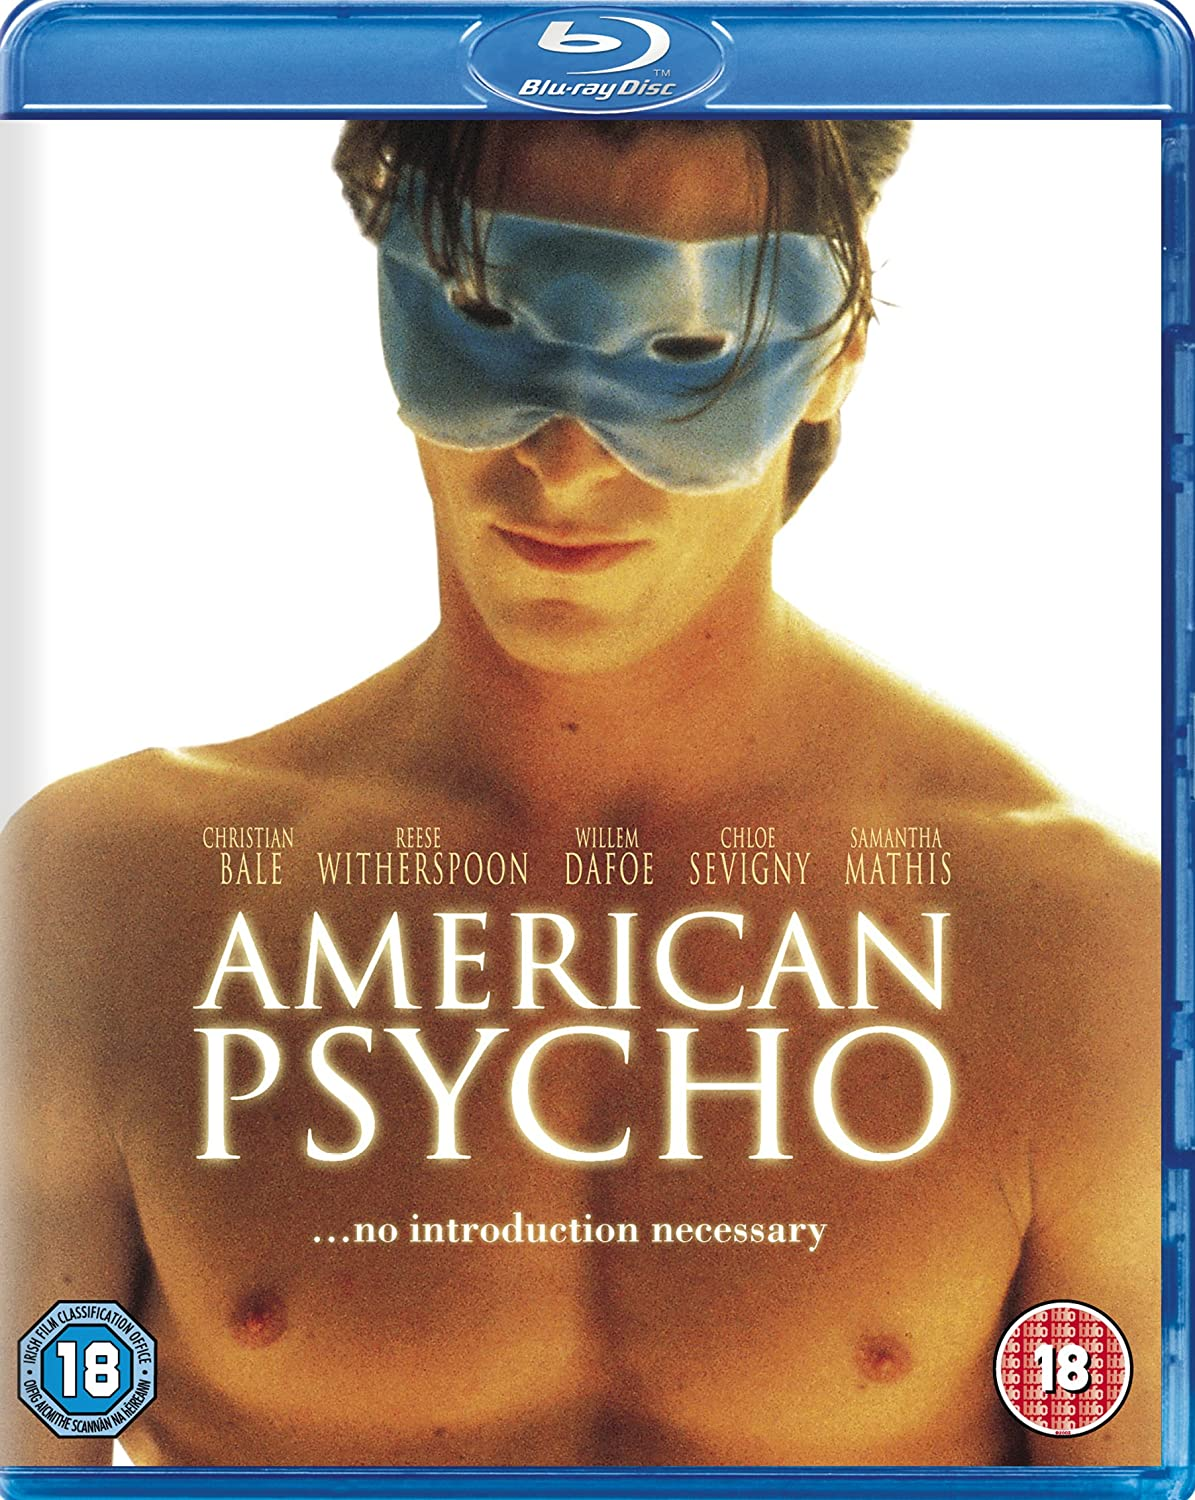 american psycho blu ray amazon co uk christian bale willem american psycho blu ray amazon co uk christian bale willem dafoe jared leto josh lucas samantha mathis matt ross bill sage chloeuml sevigny